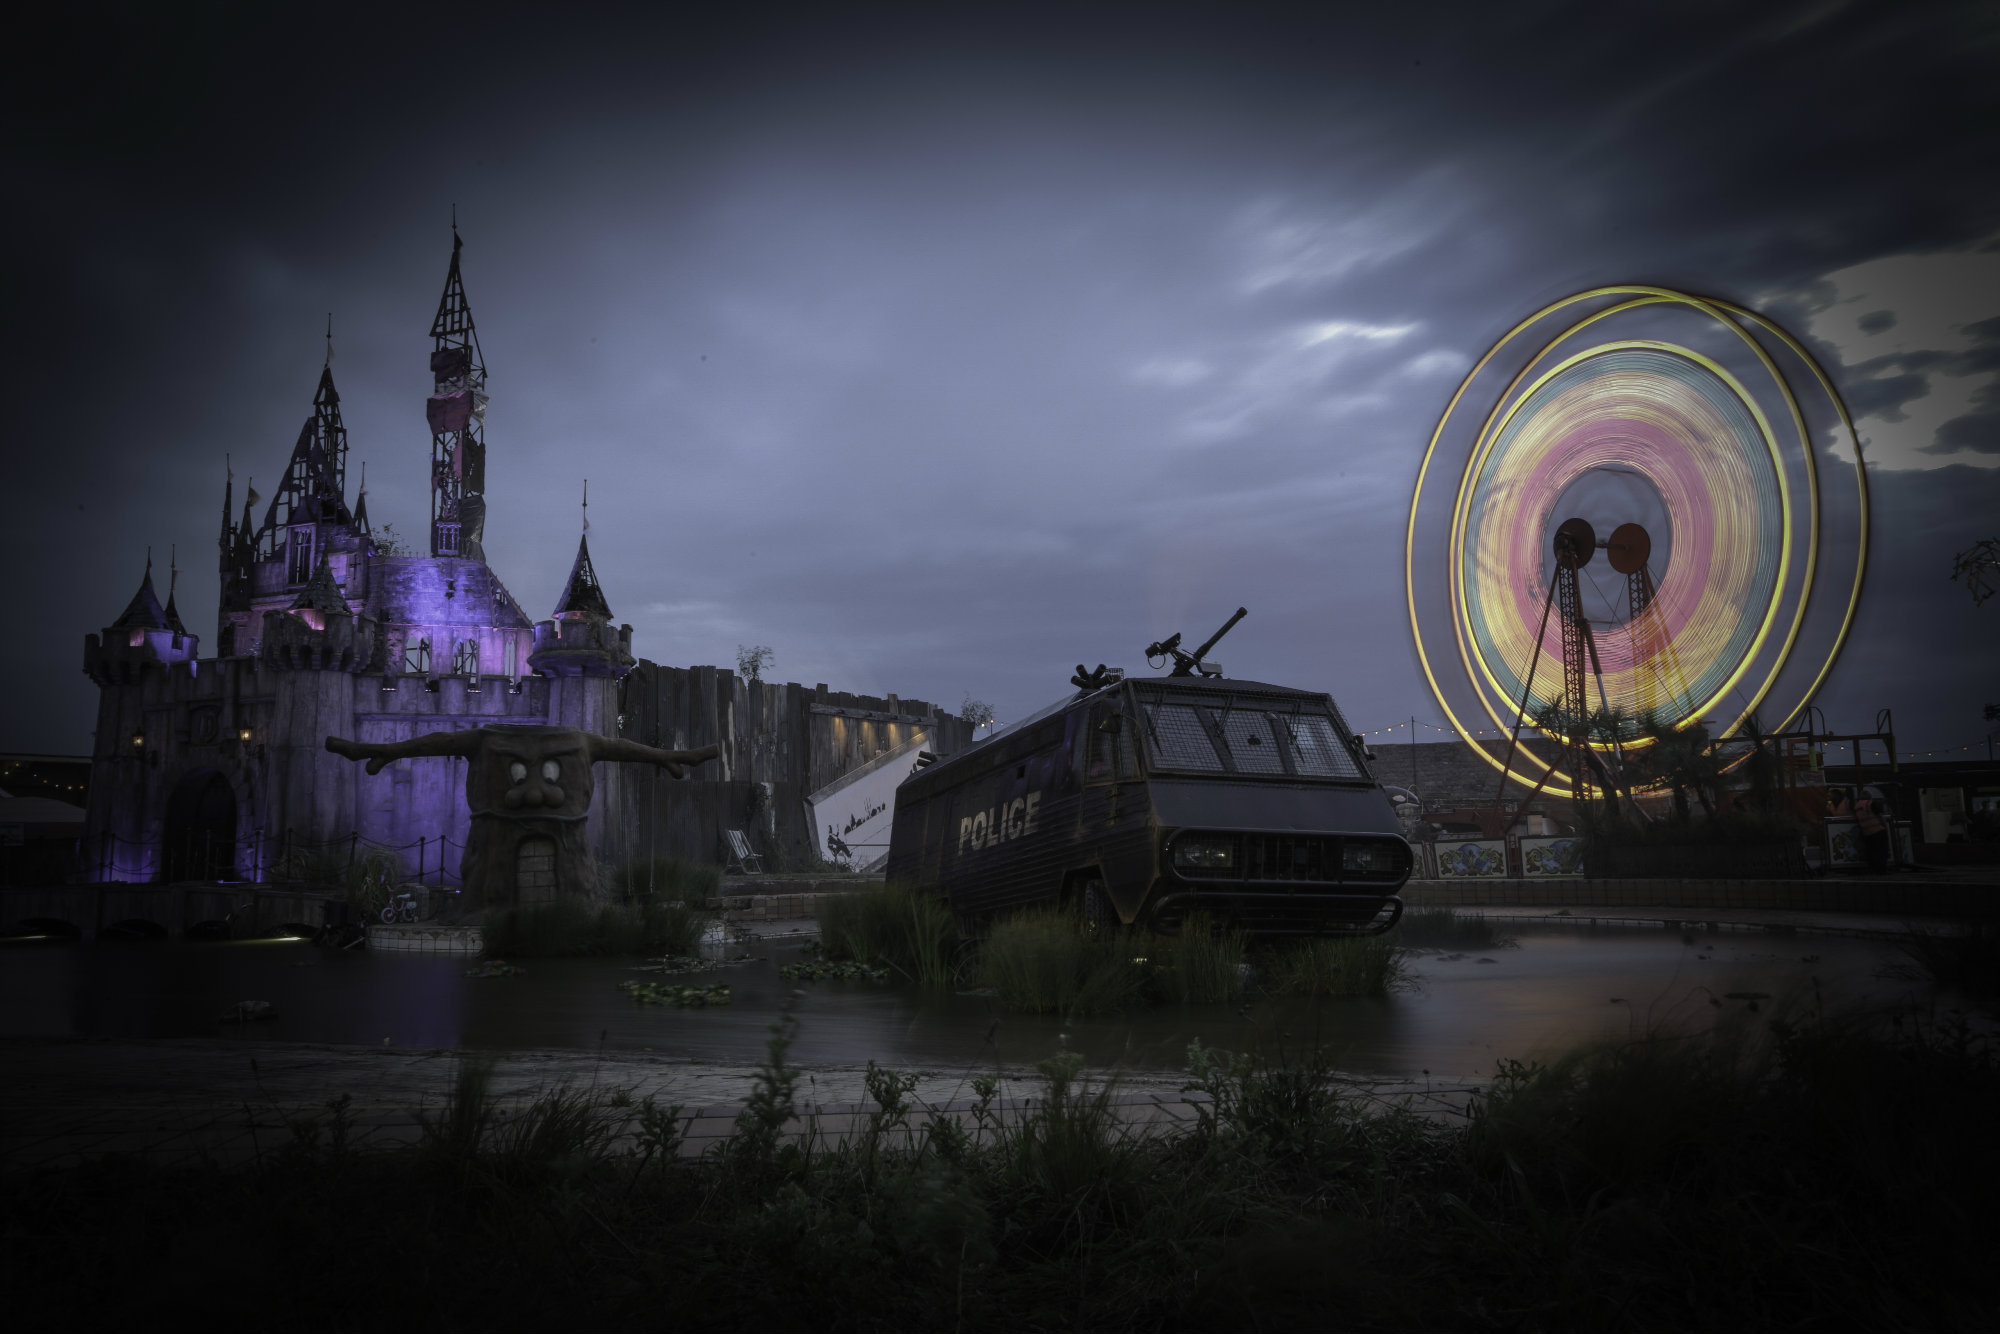 Hosting Banksy's Dismaland put Weston-super-Mare on the map